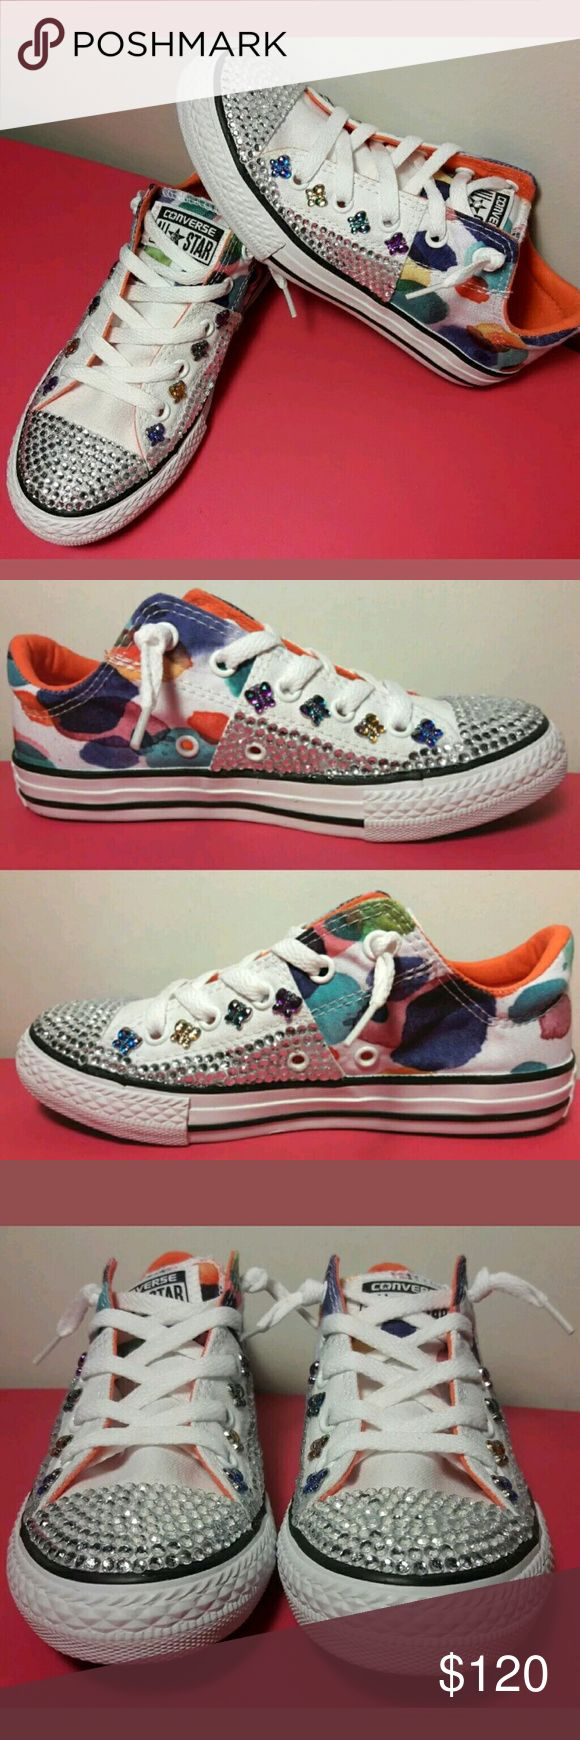 Girls Converse All Star Blinged Out Sneakers Sz 1 Converse All Star Girls Shoes Size 1 Crystal Rhinestone Bling with Butterfly Embellishment NIB   Brand New In Box   Please view all images Converse Shoes Sneakers